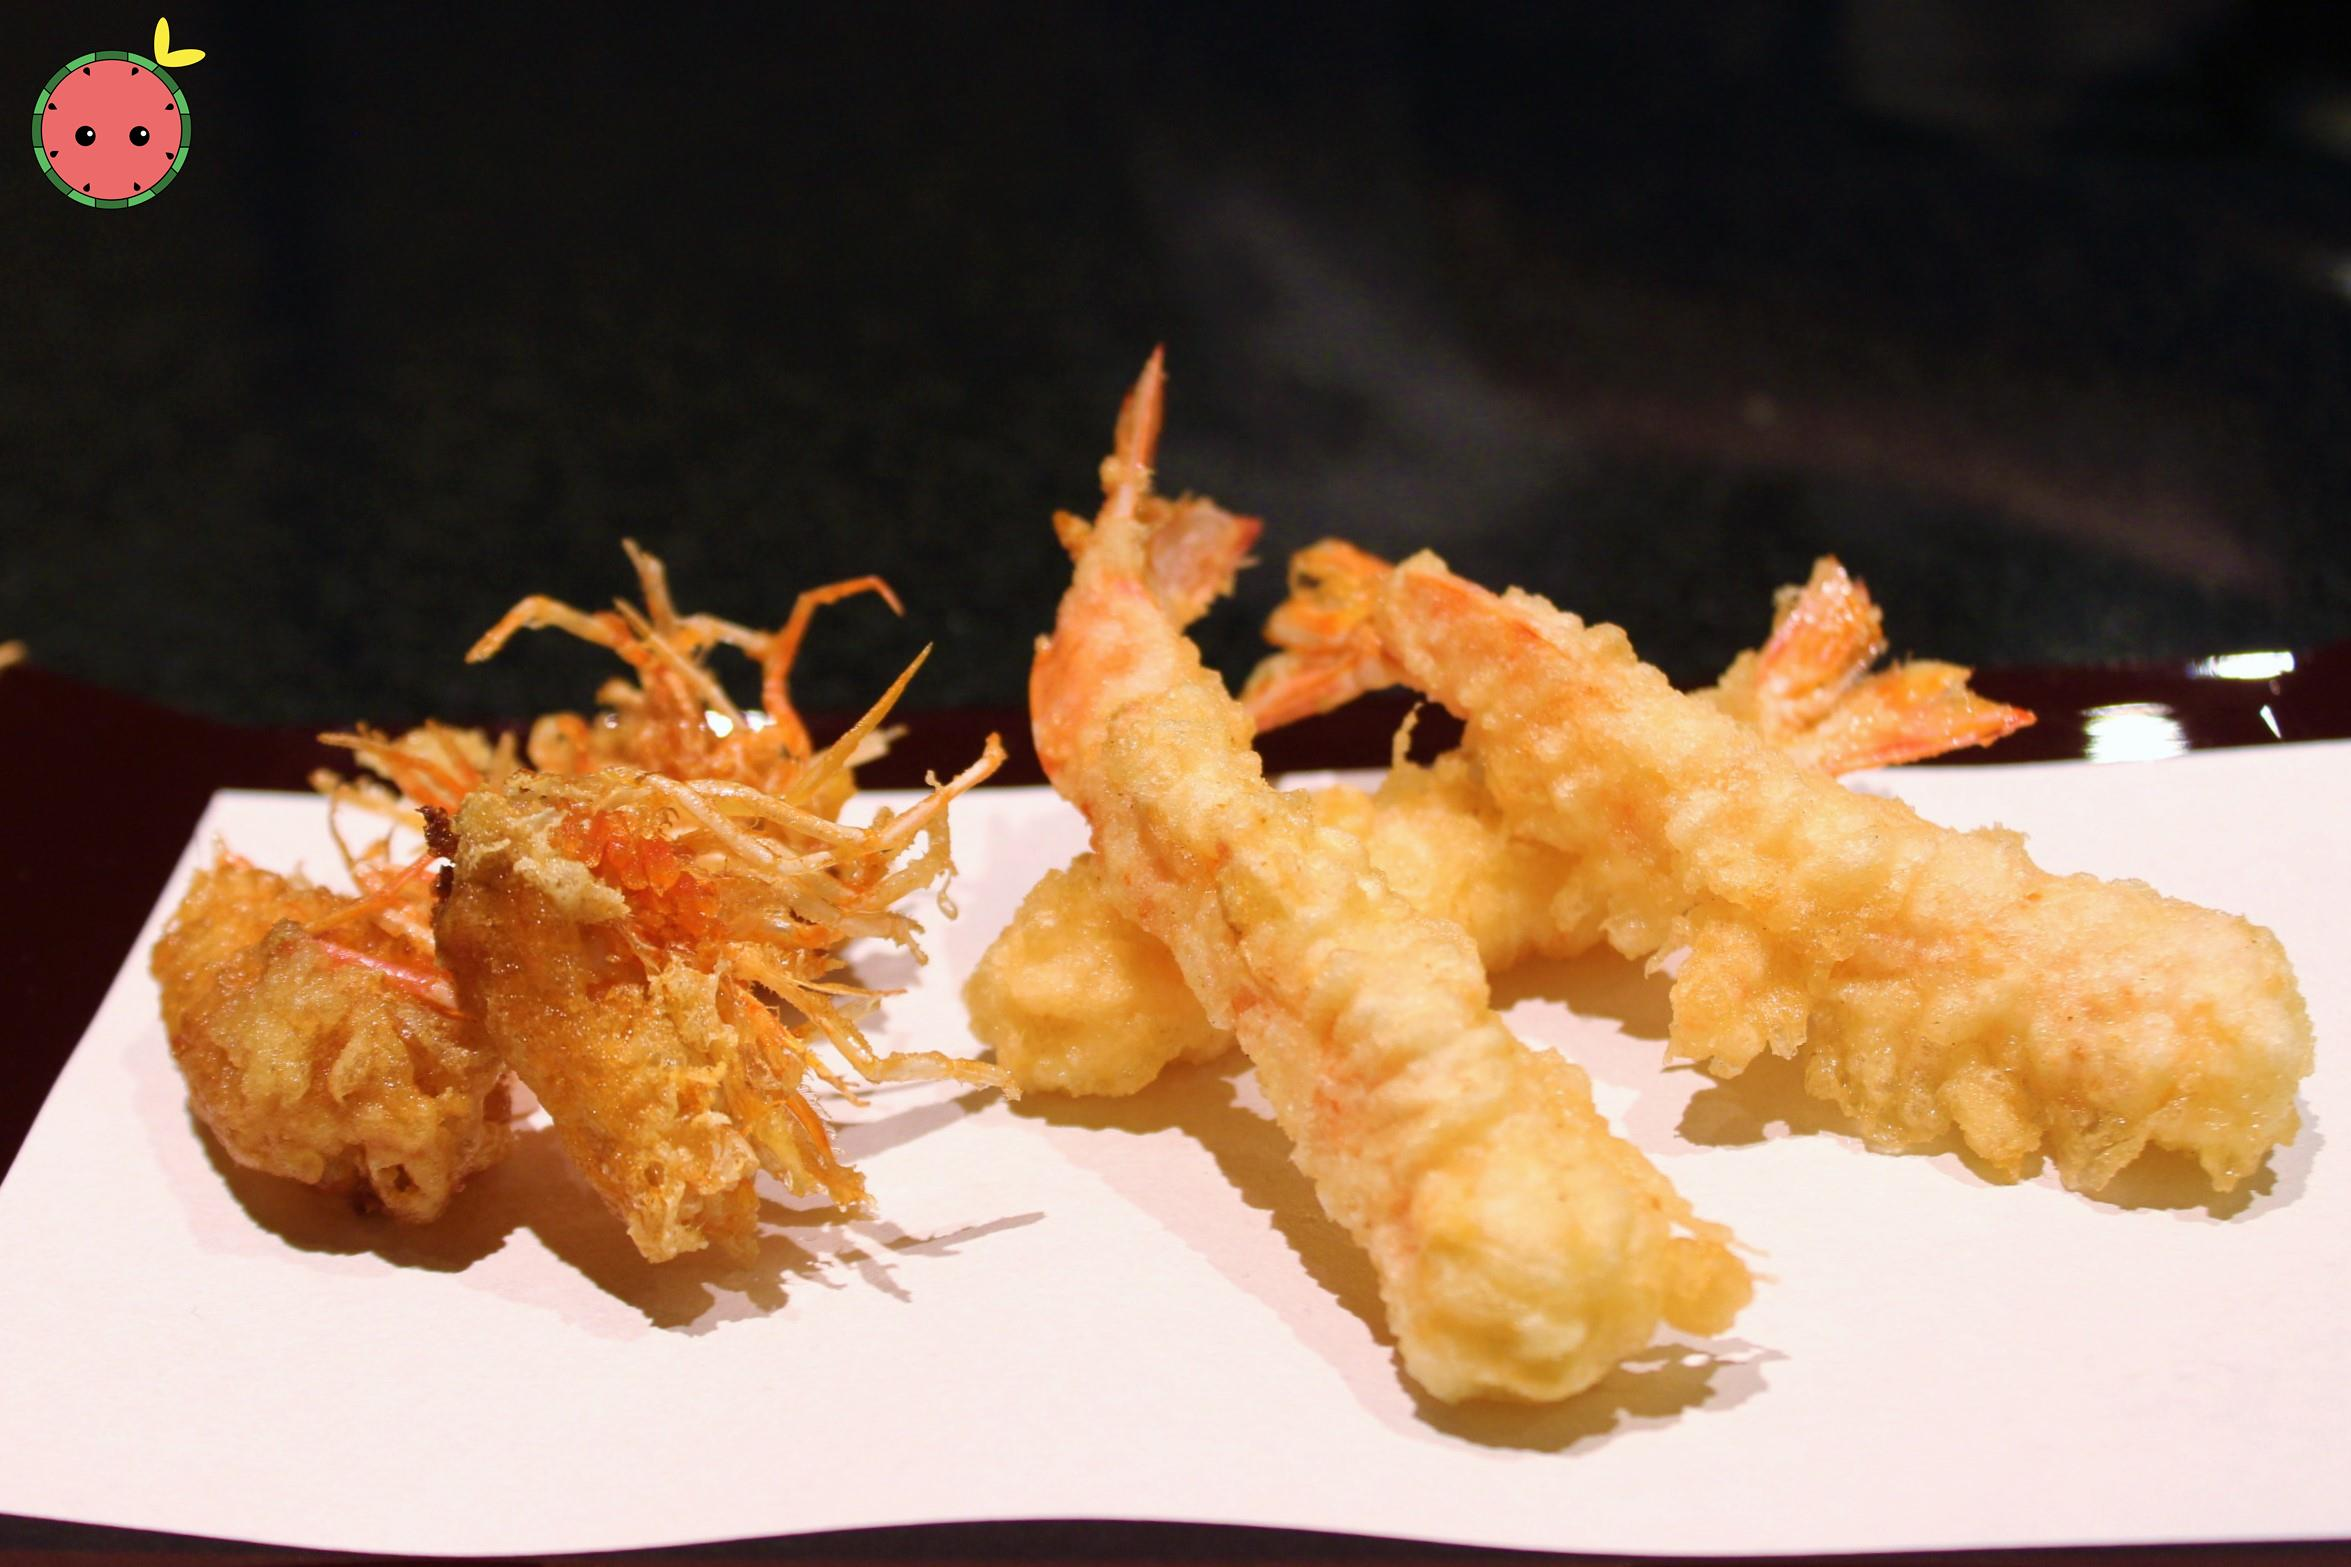 Shrimp Tempura Heads and Bodies